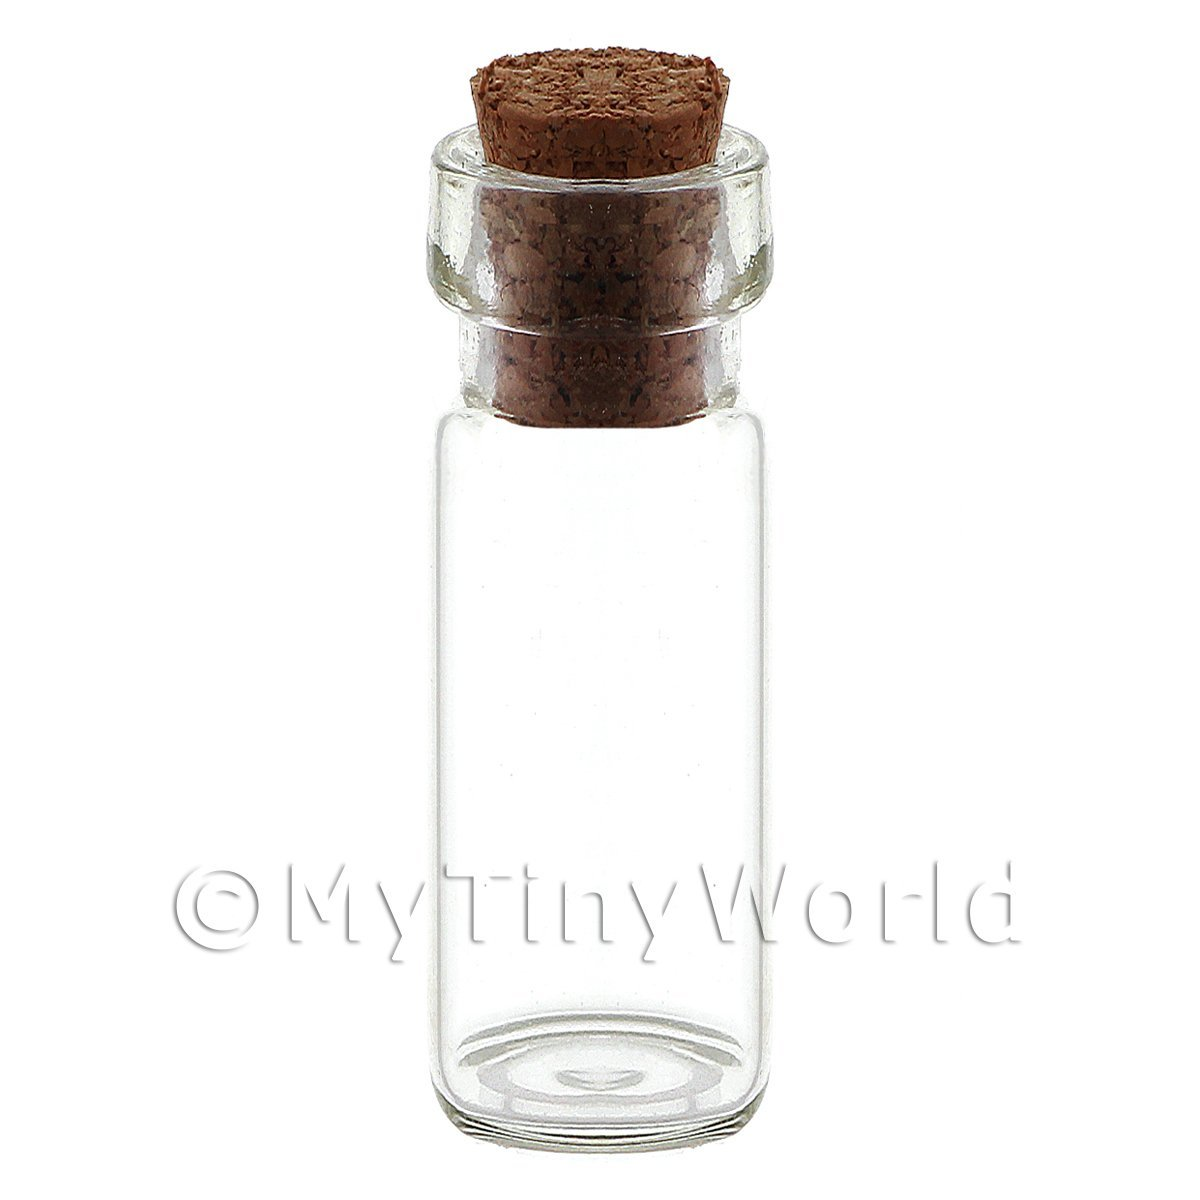 Dolls House Miniature 20mm Clear Glass Jar With Removable Cork